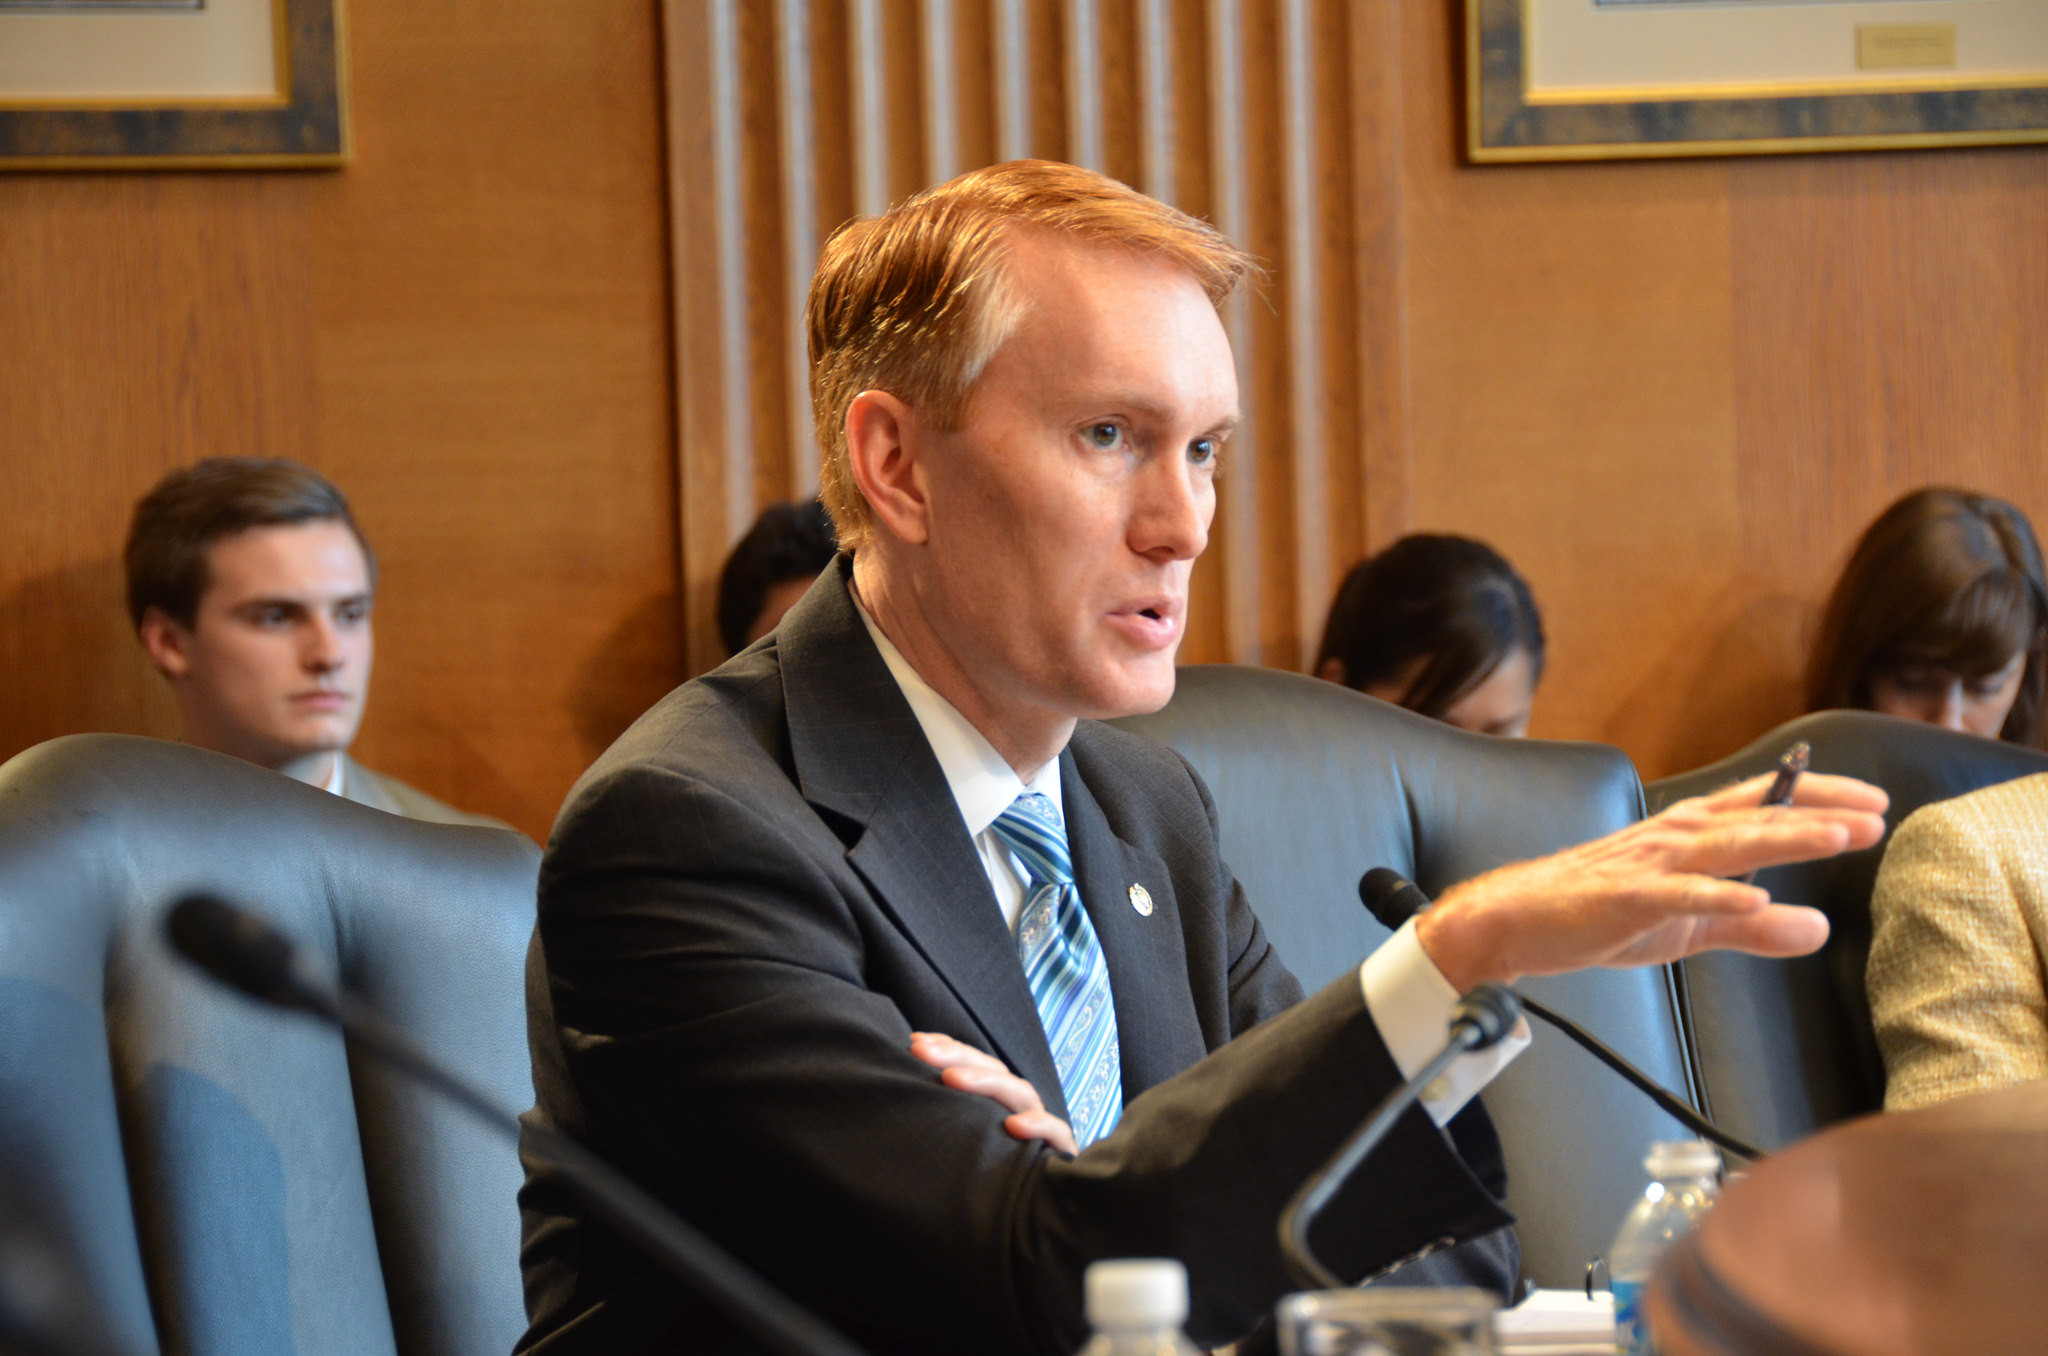 Sen. Lankford calls for removal of Andrew Jackson from $20 bill